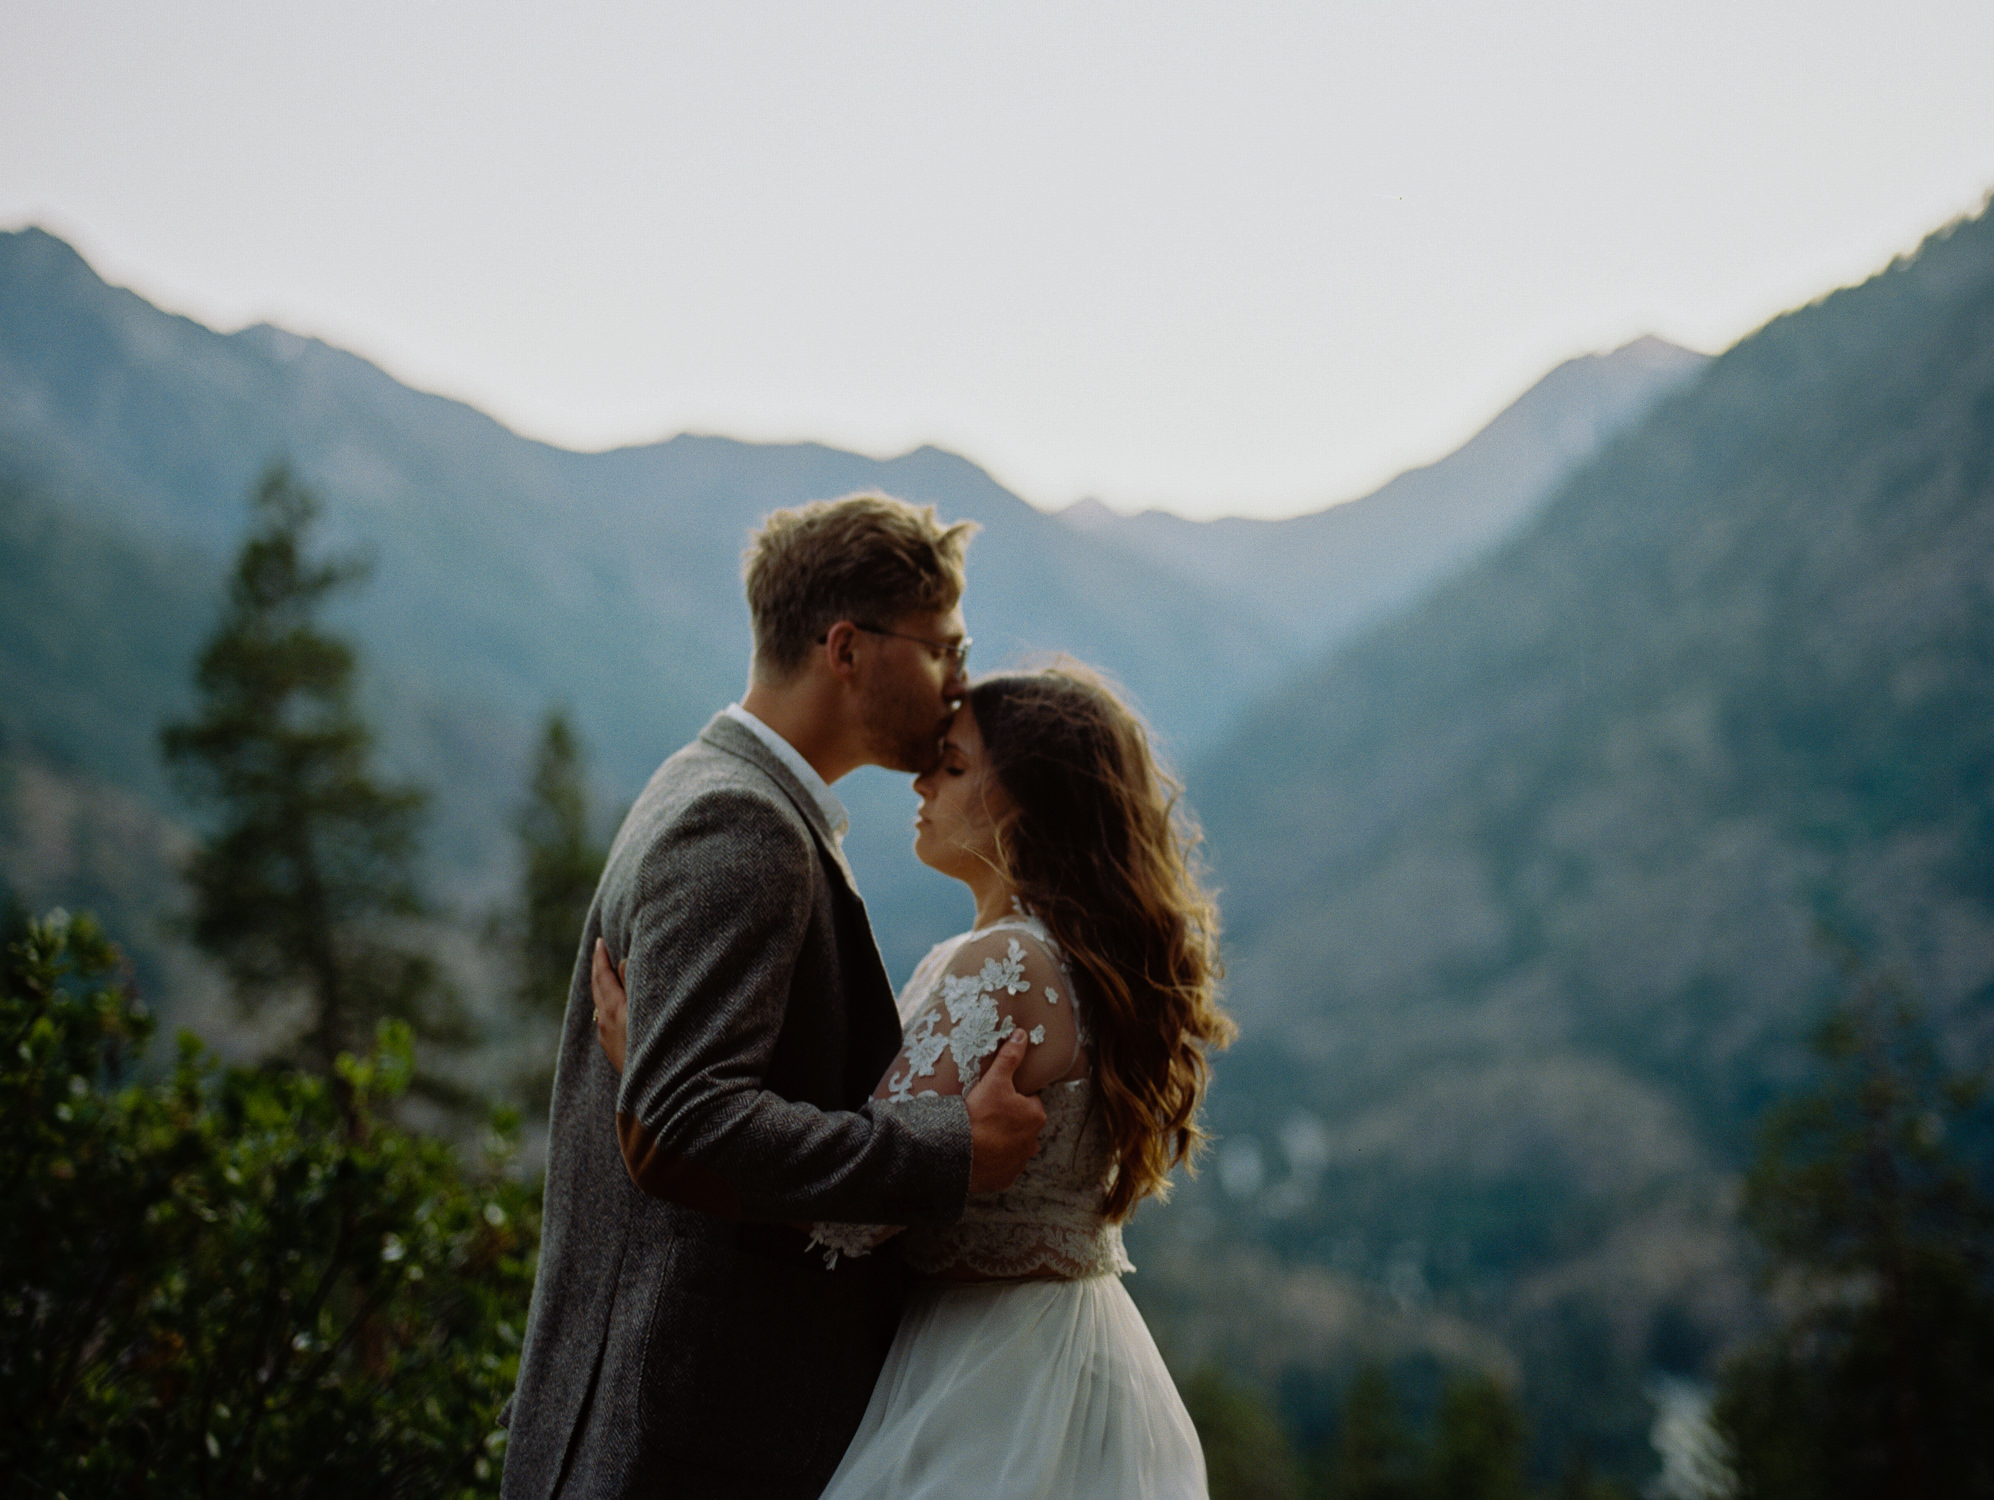 Pacific Northwest Elopement Nate Meeds Portland Wedding and Elopement Photographer Portland Elopement Photographer